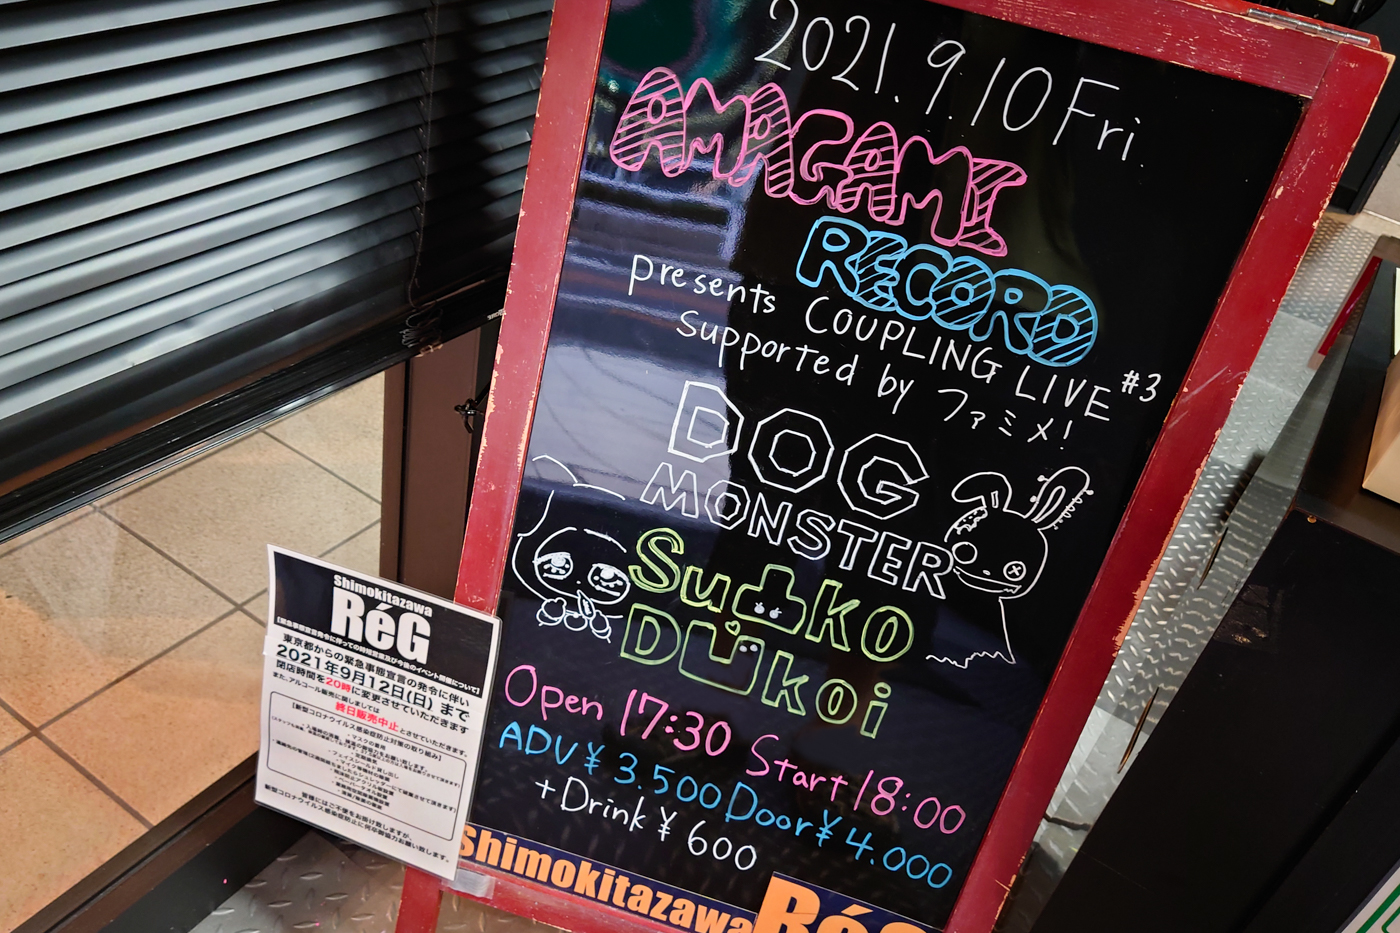 AMAGAMI RECORD presents 「COUPLING LIVE#3」supported by ファミメ!@下北沢ReG